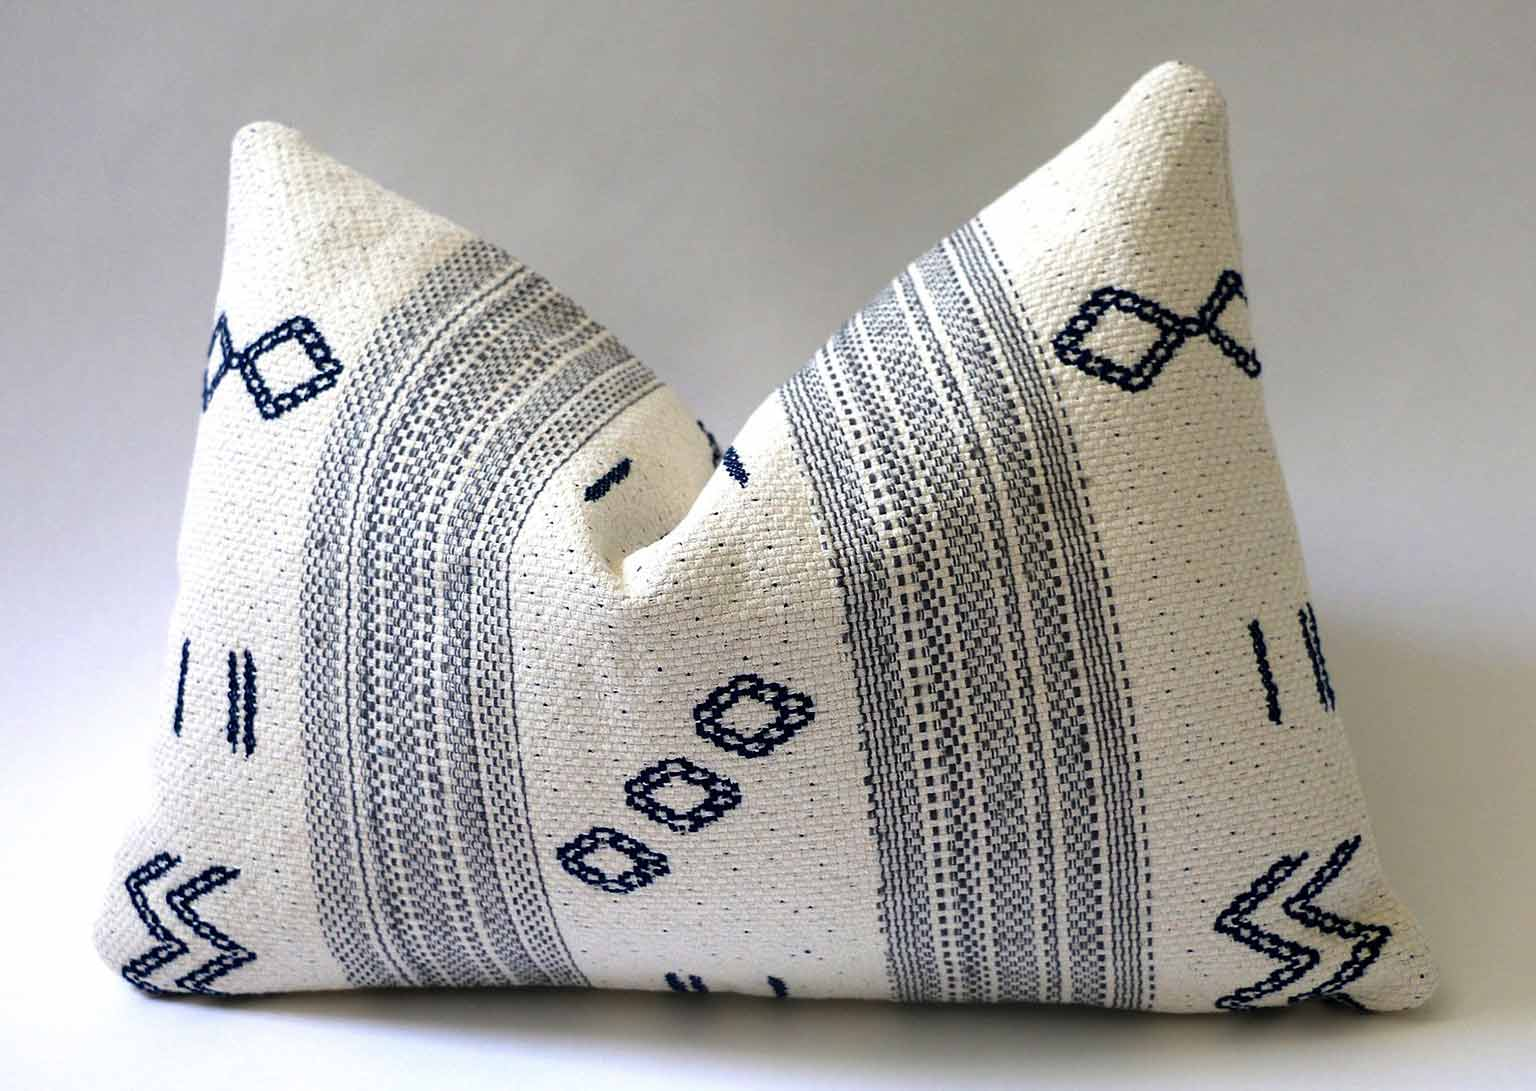 Blue and white patterned pillow